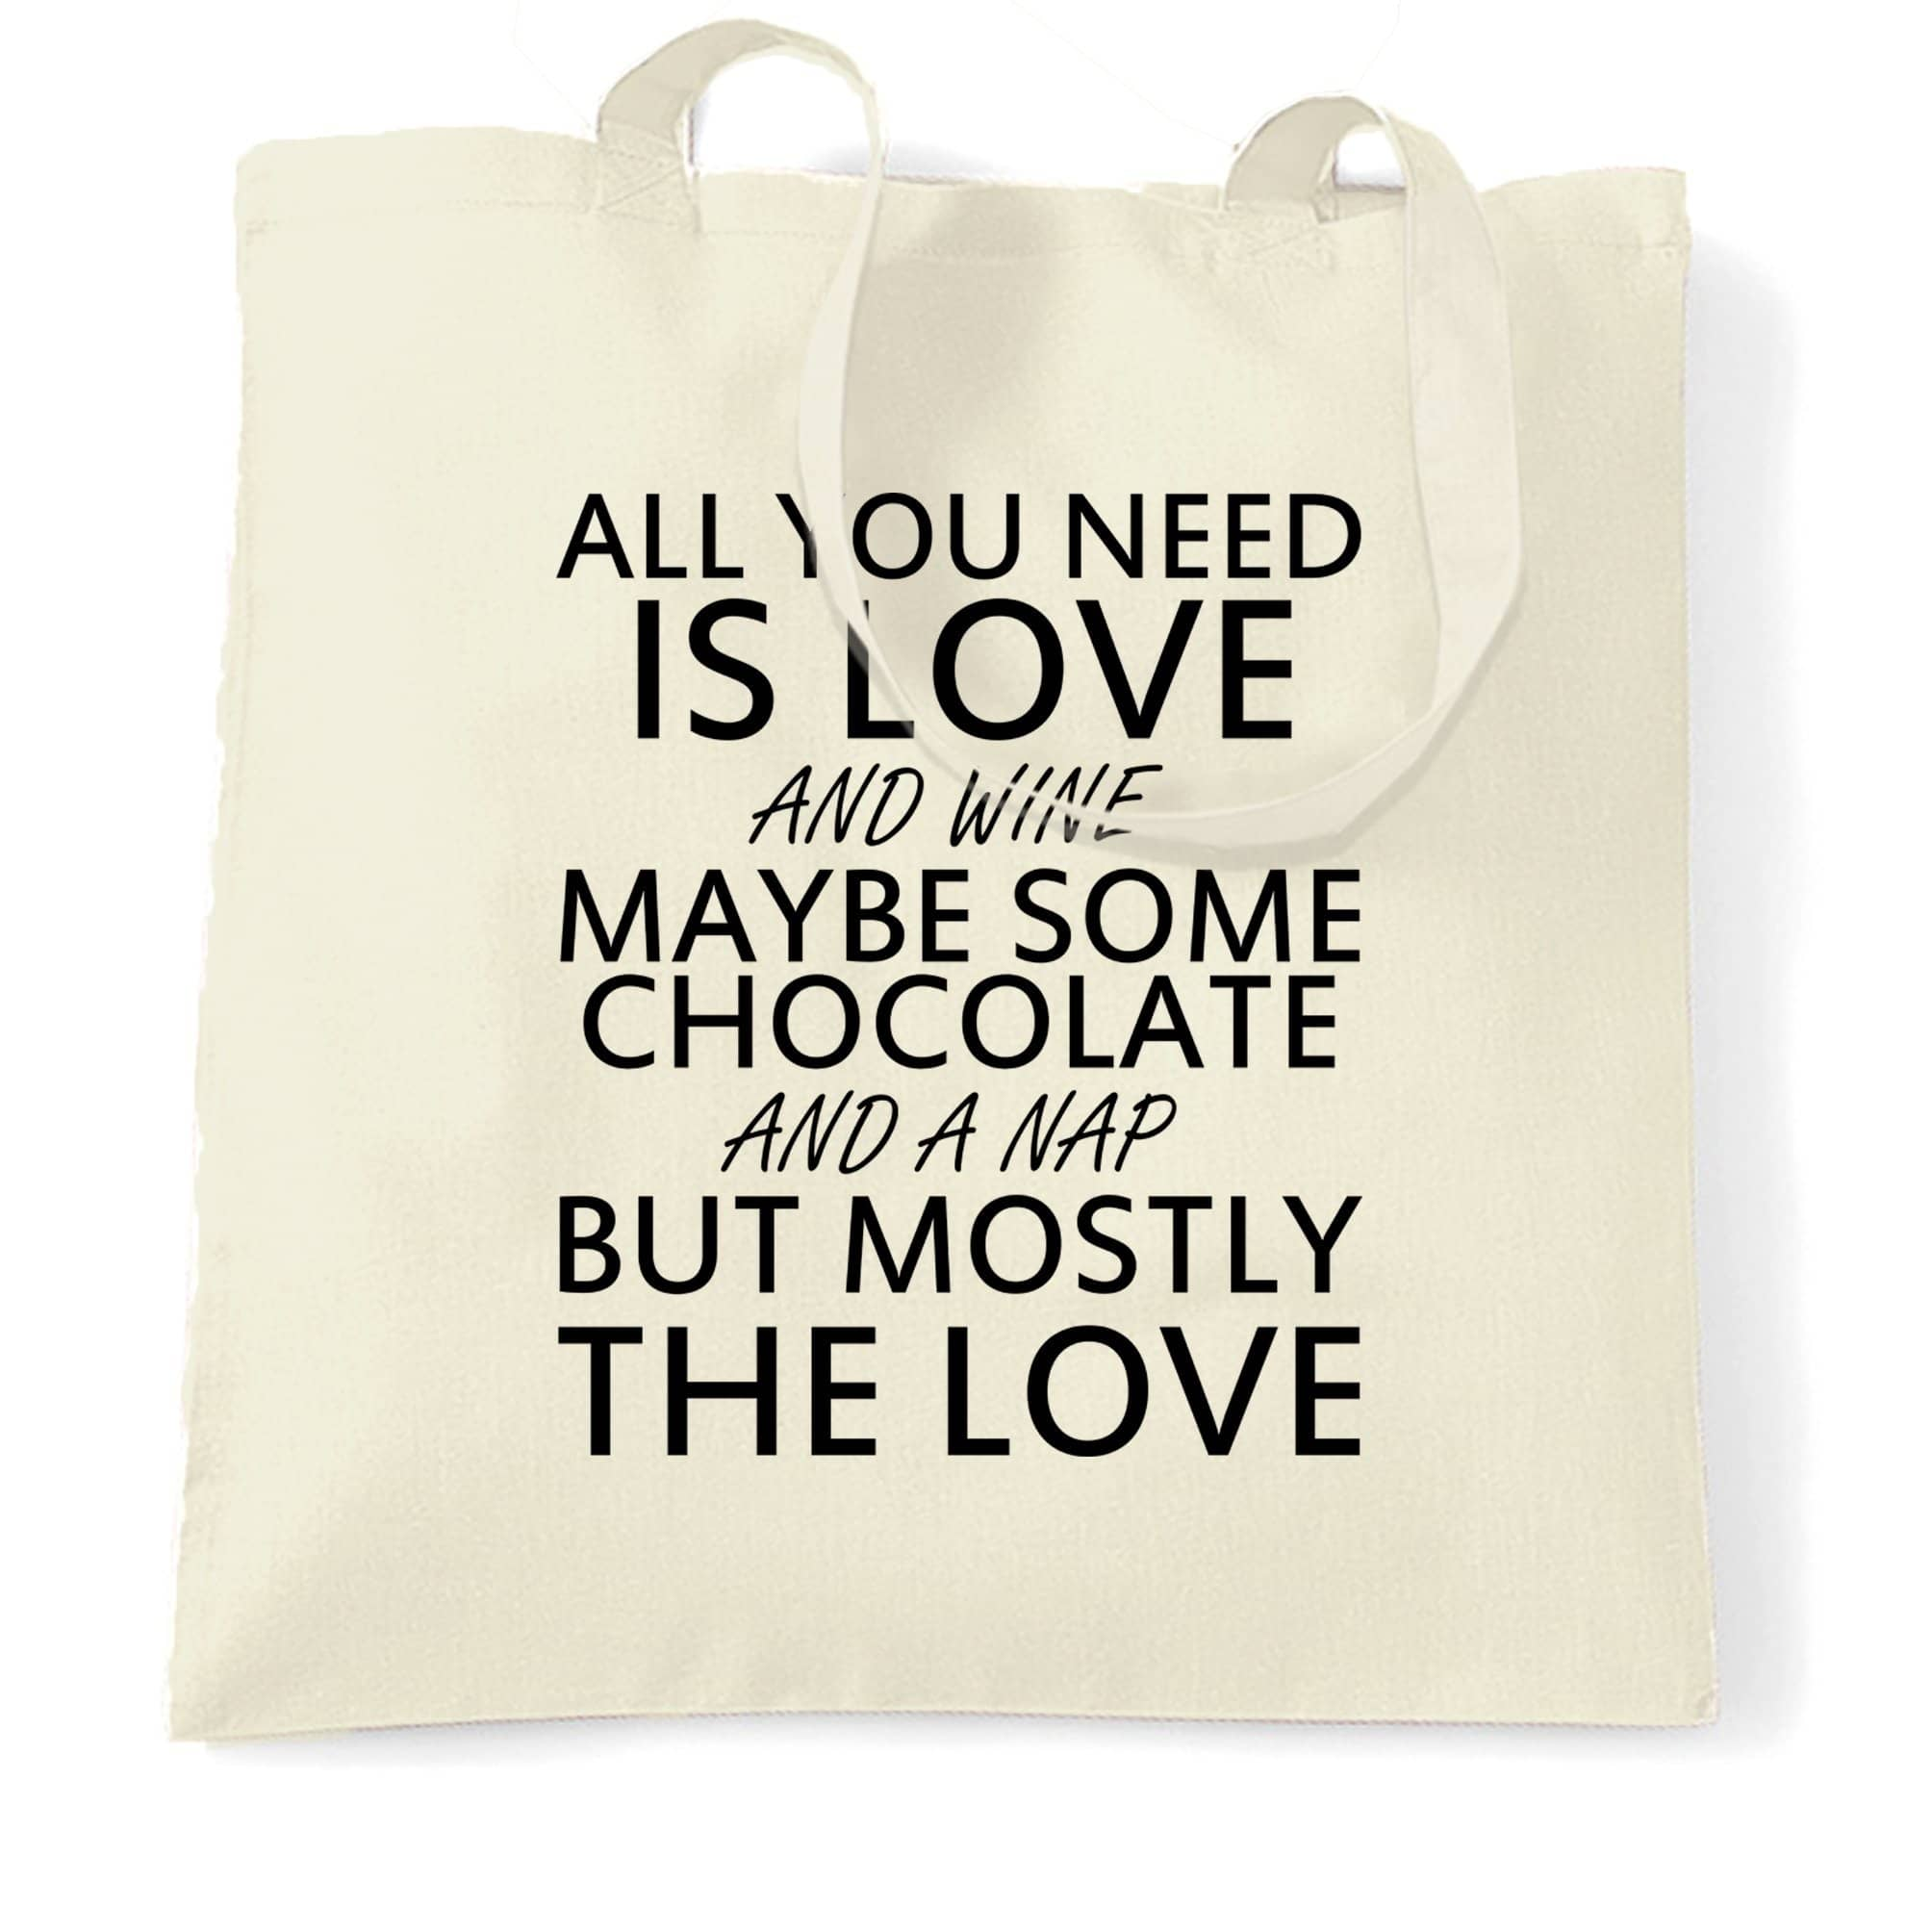 All You Need Tote Bag Love, Wine, Chocolate, A Nap